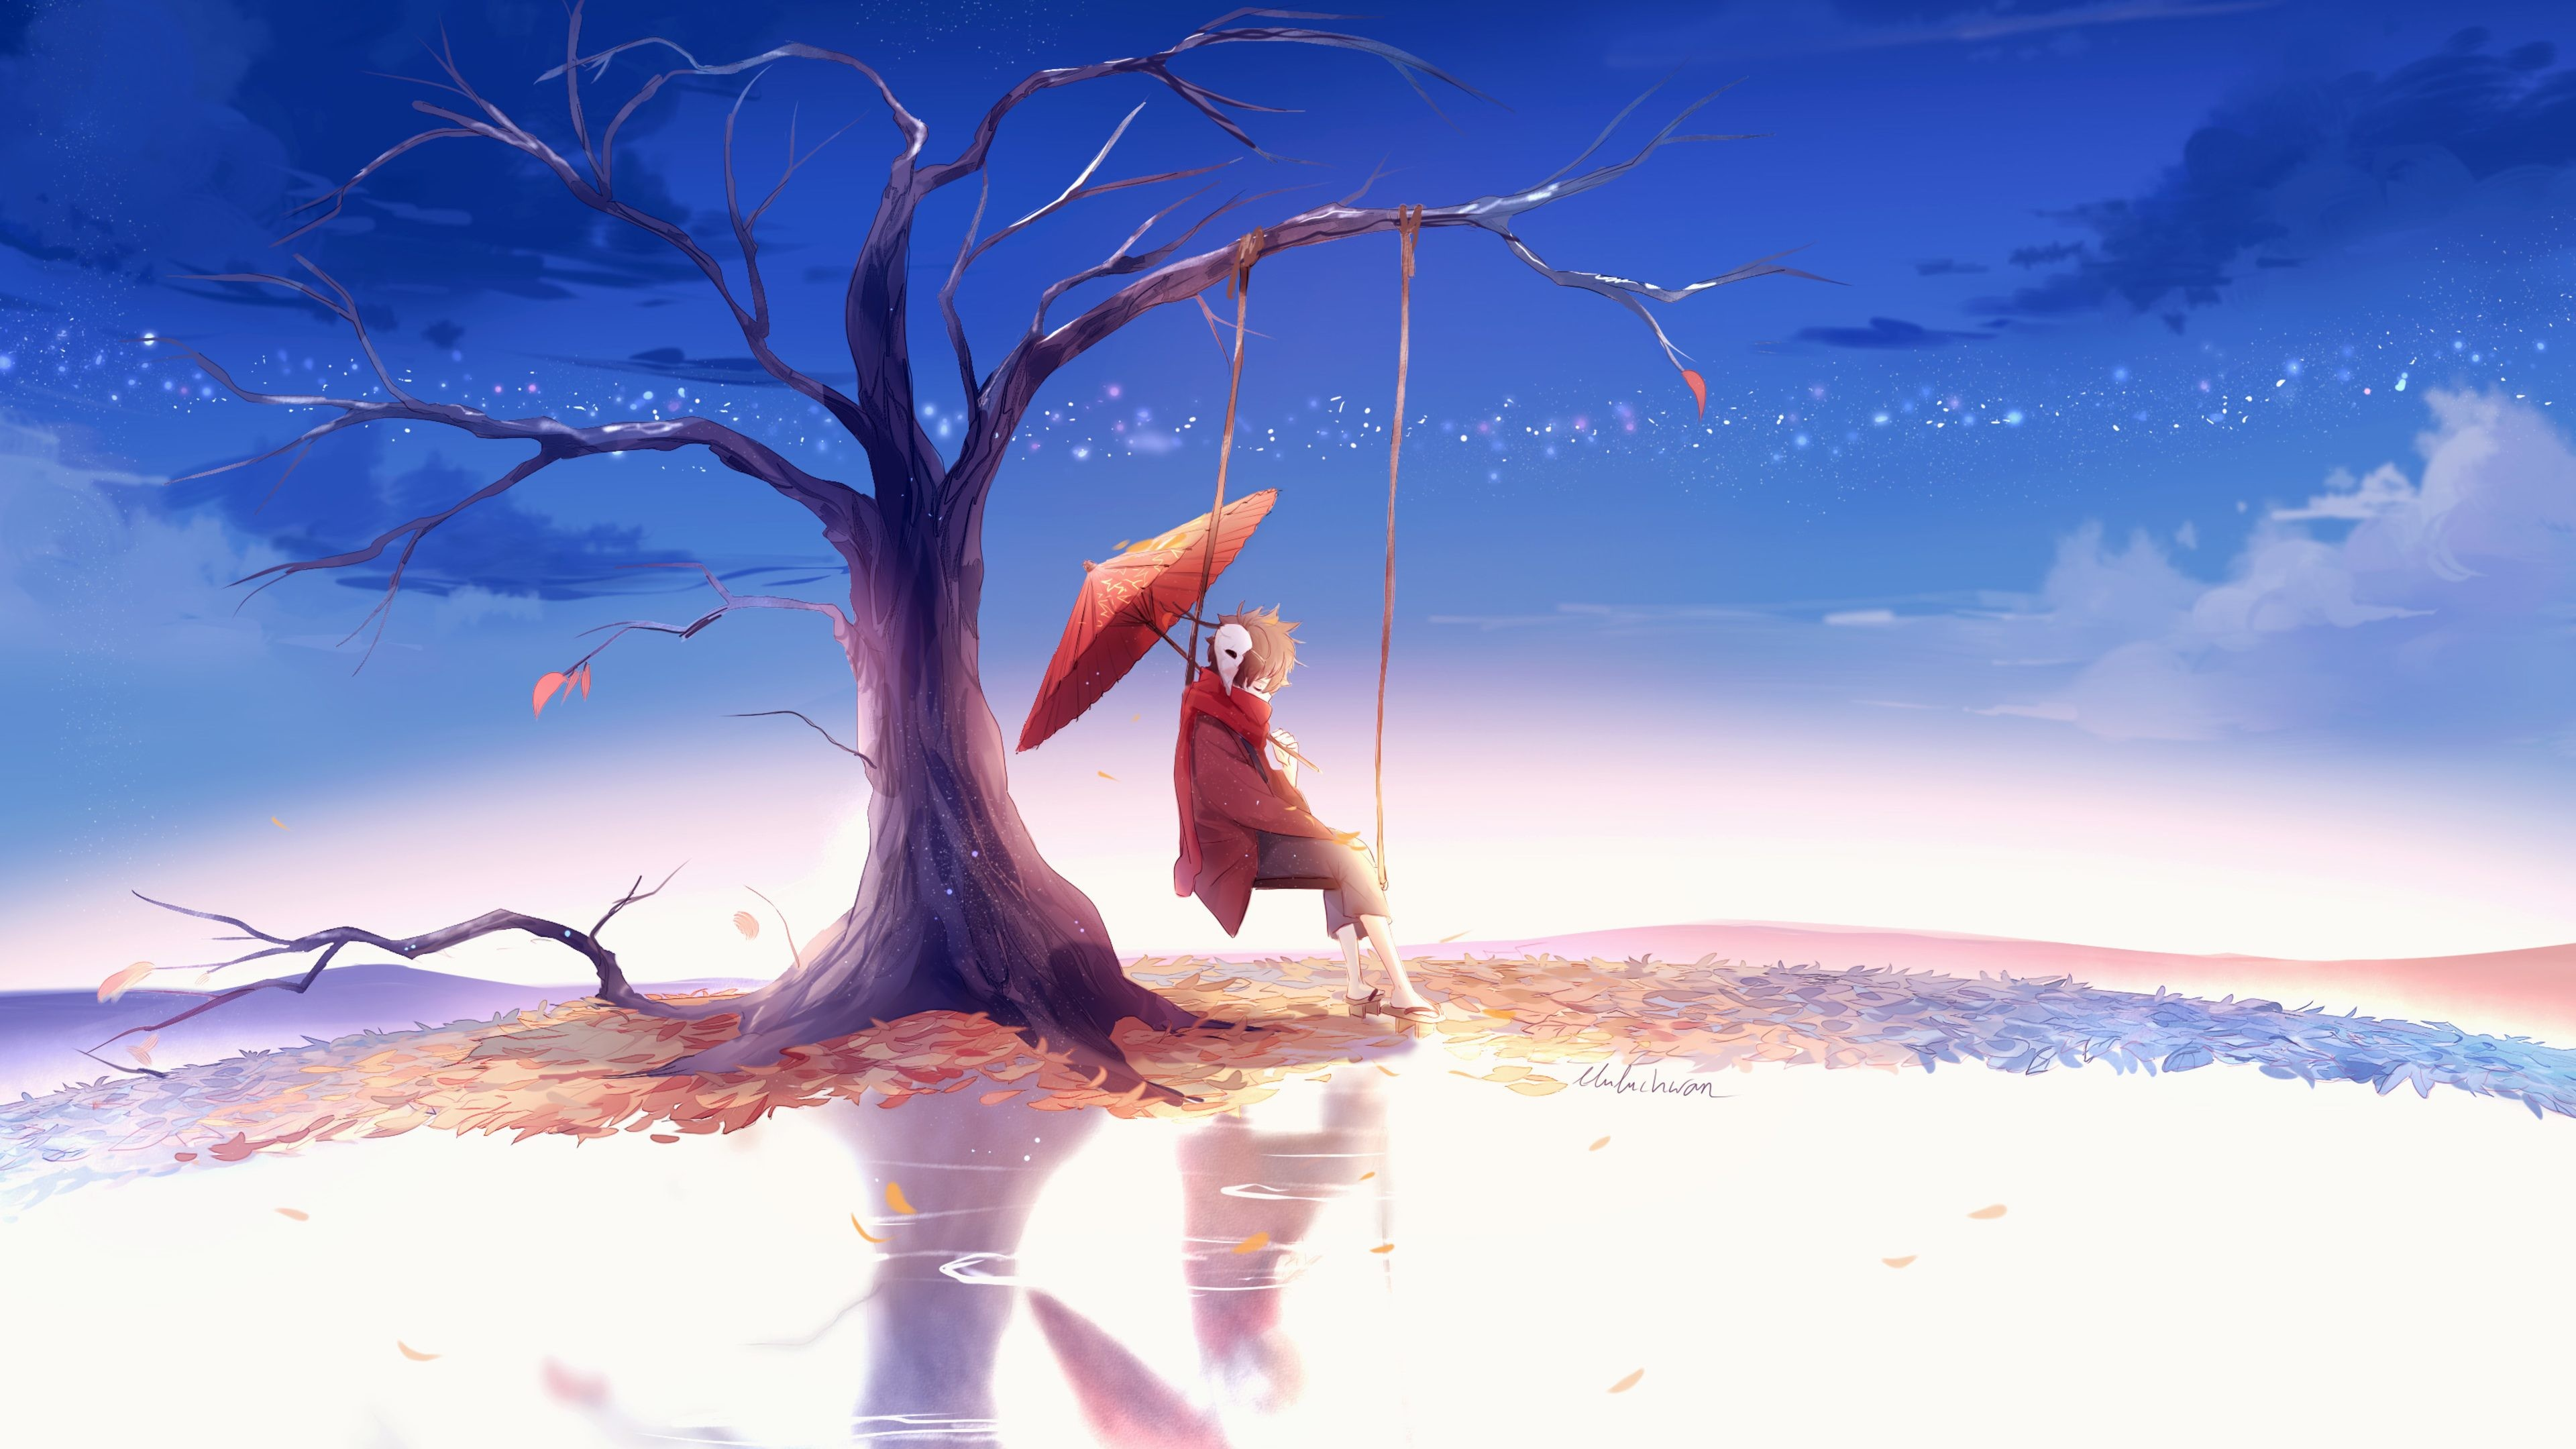 Sad Anime 763957   HD Wallpaper Backgrounds Download 3840x2160